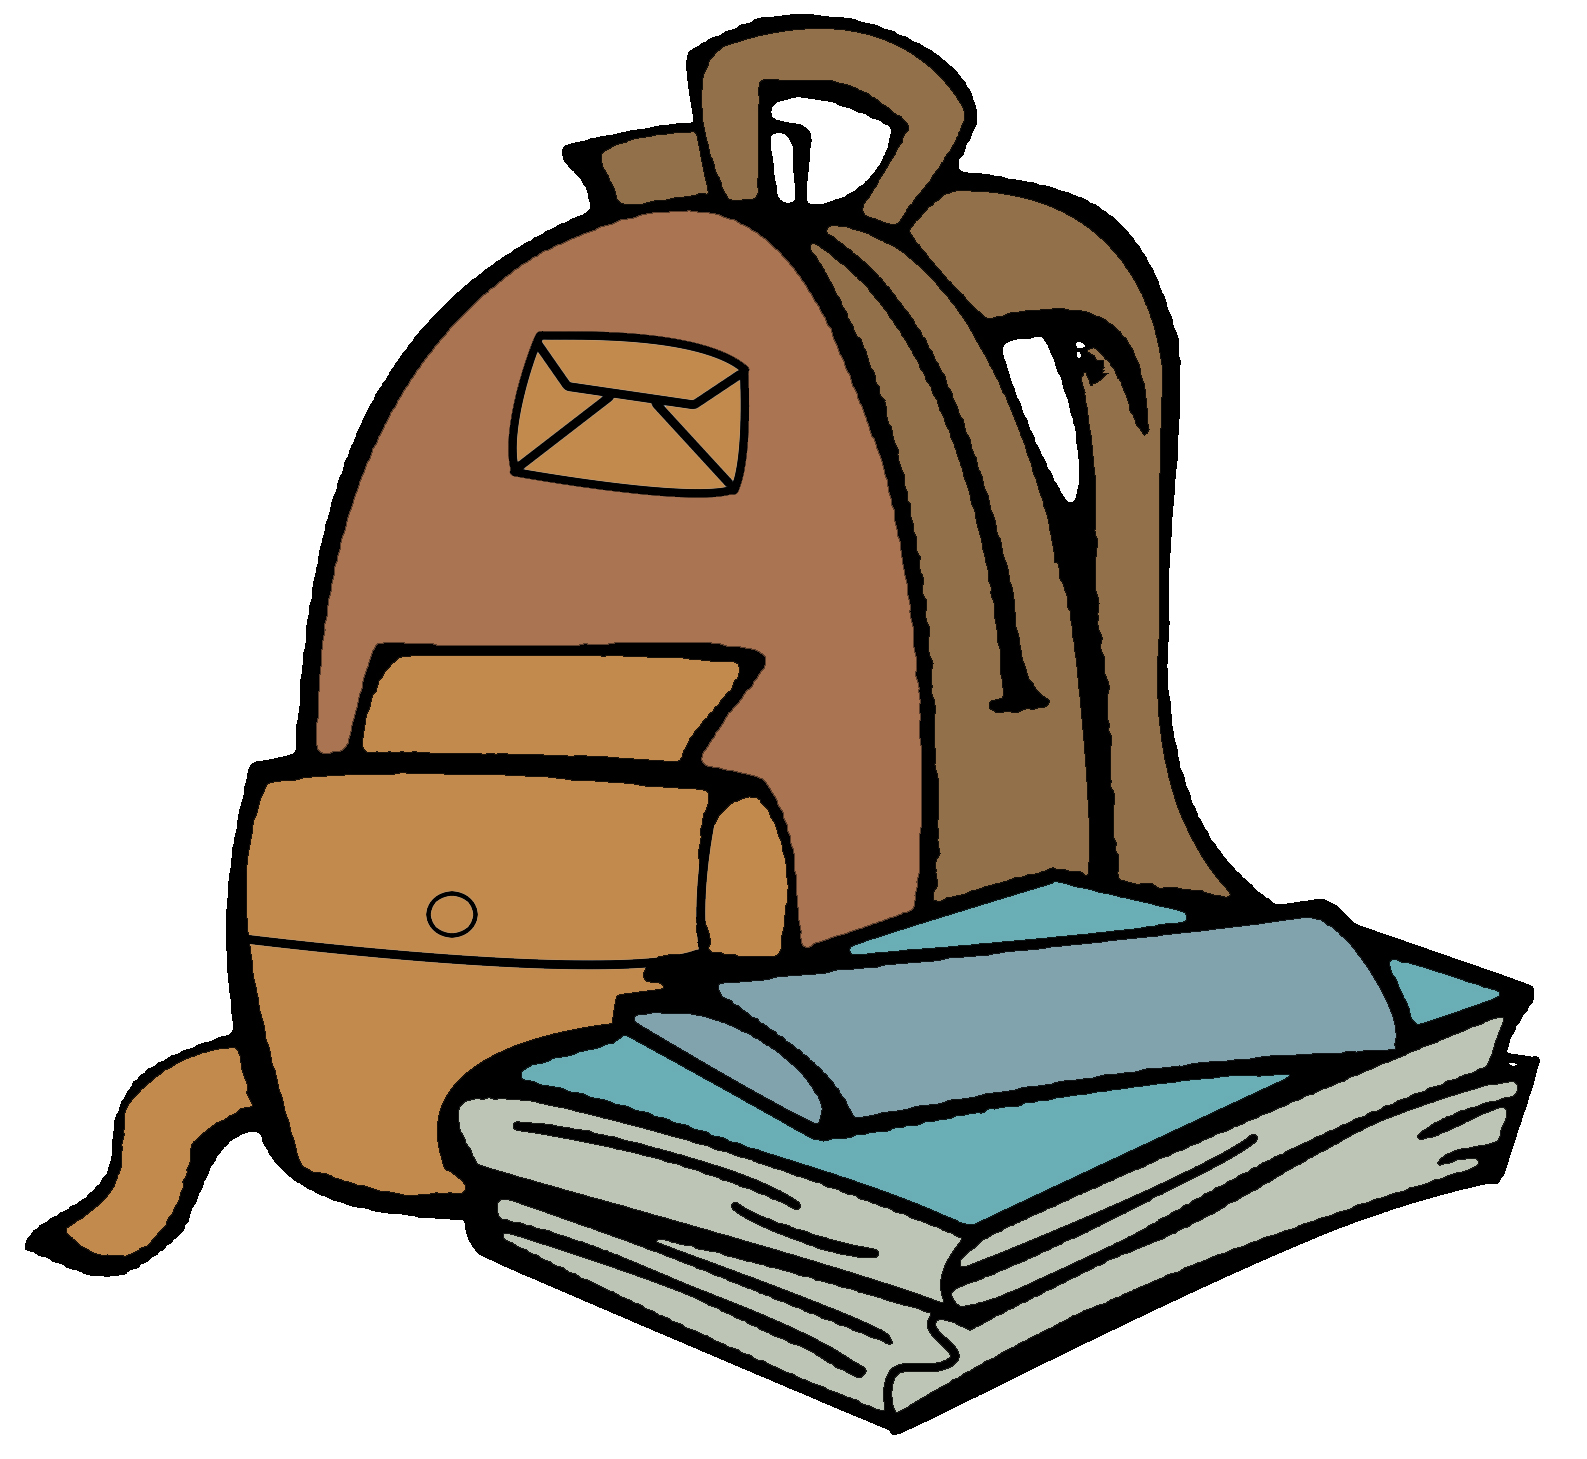 clipart rucksack - photo #25